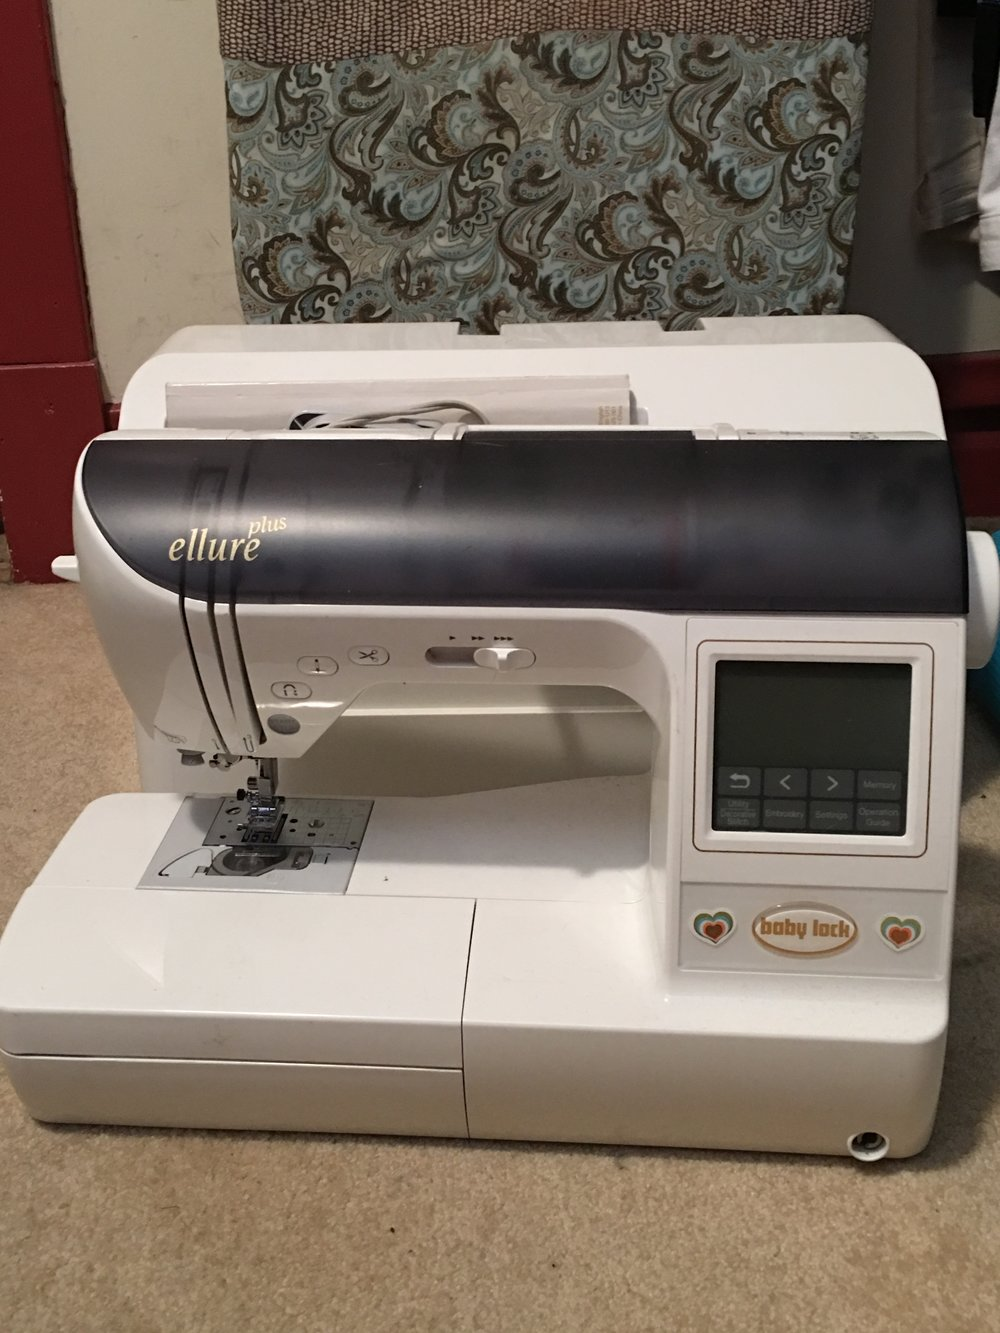 Babylock Ellure Plus Sewing/Embroidery Machine